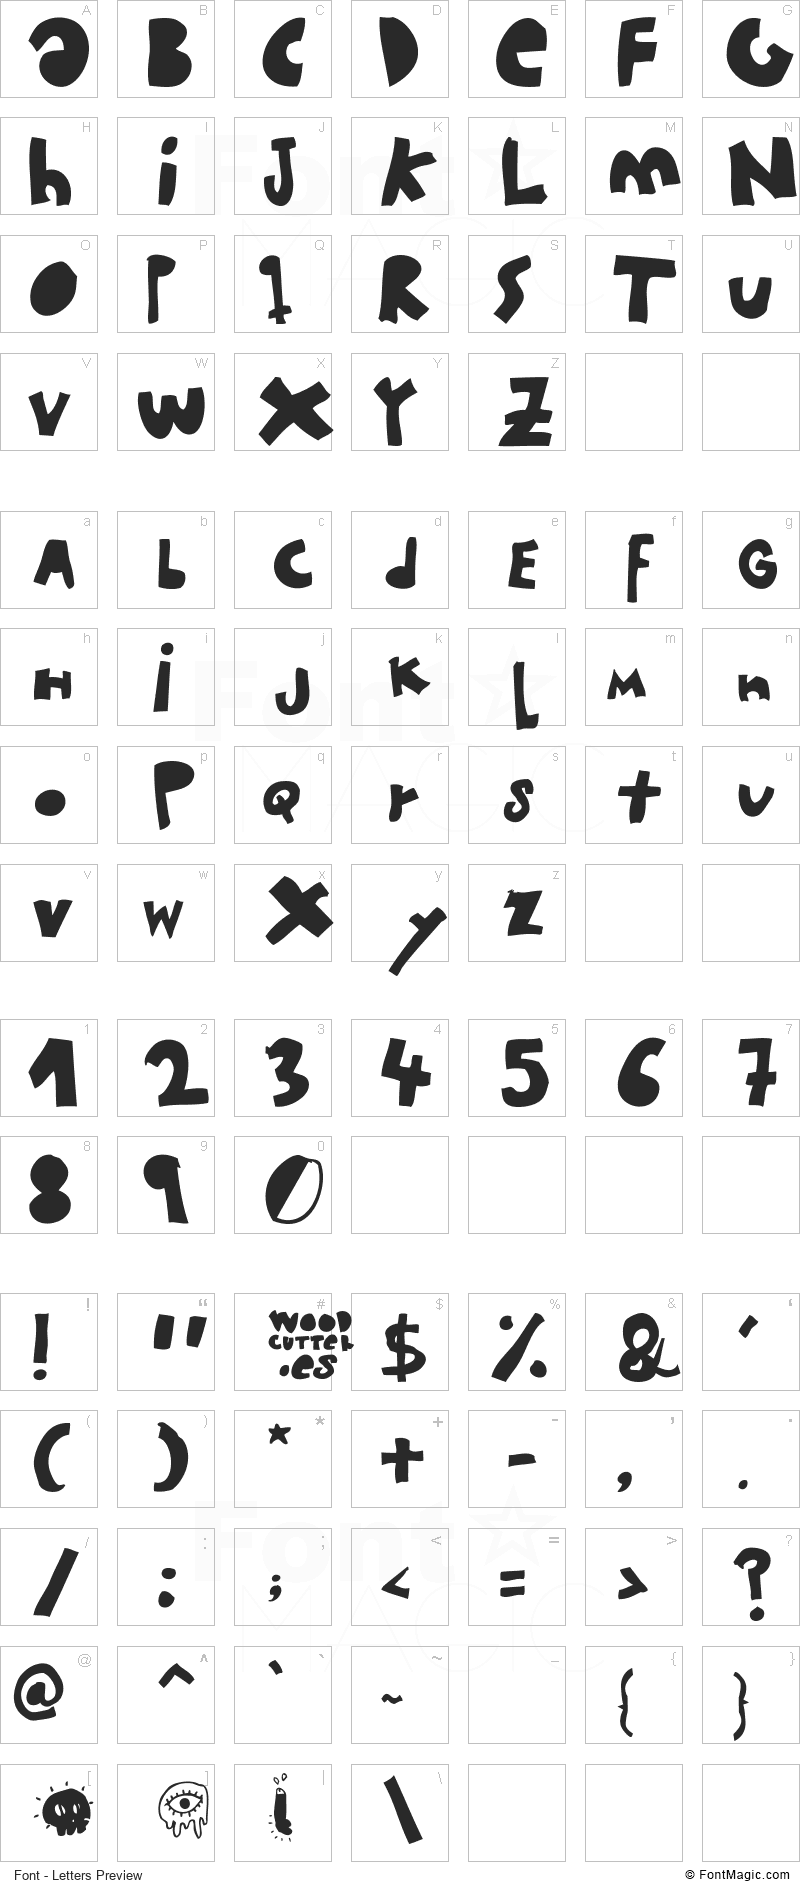 Woodcutter MMXII Font - All Latters Preview Chart